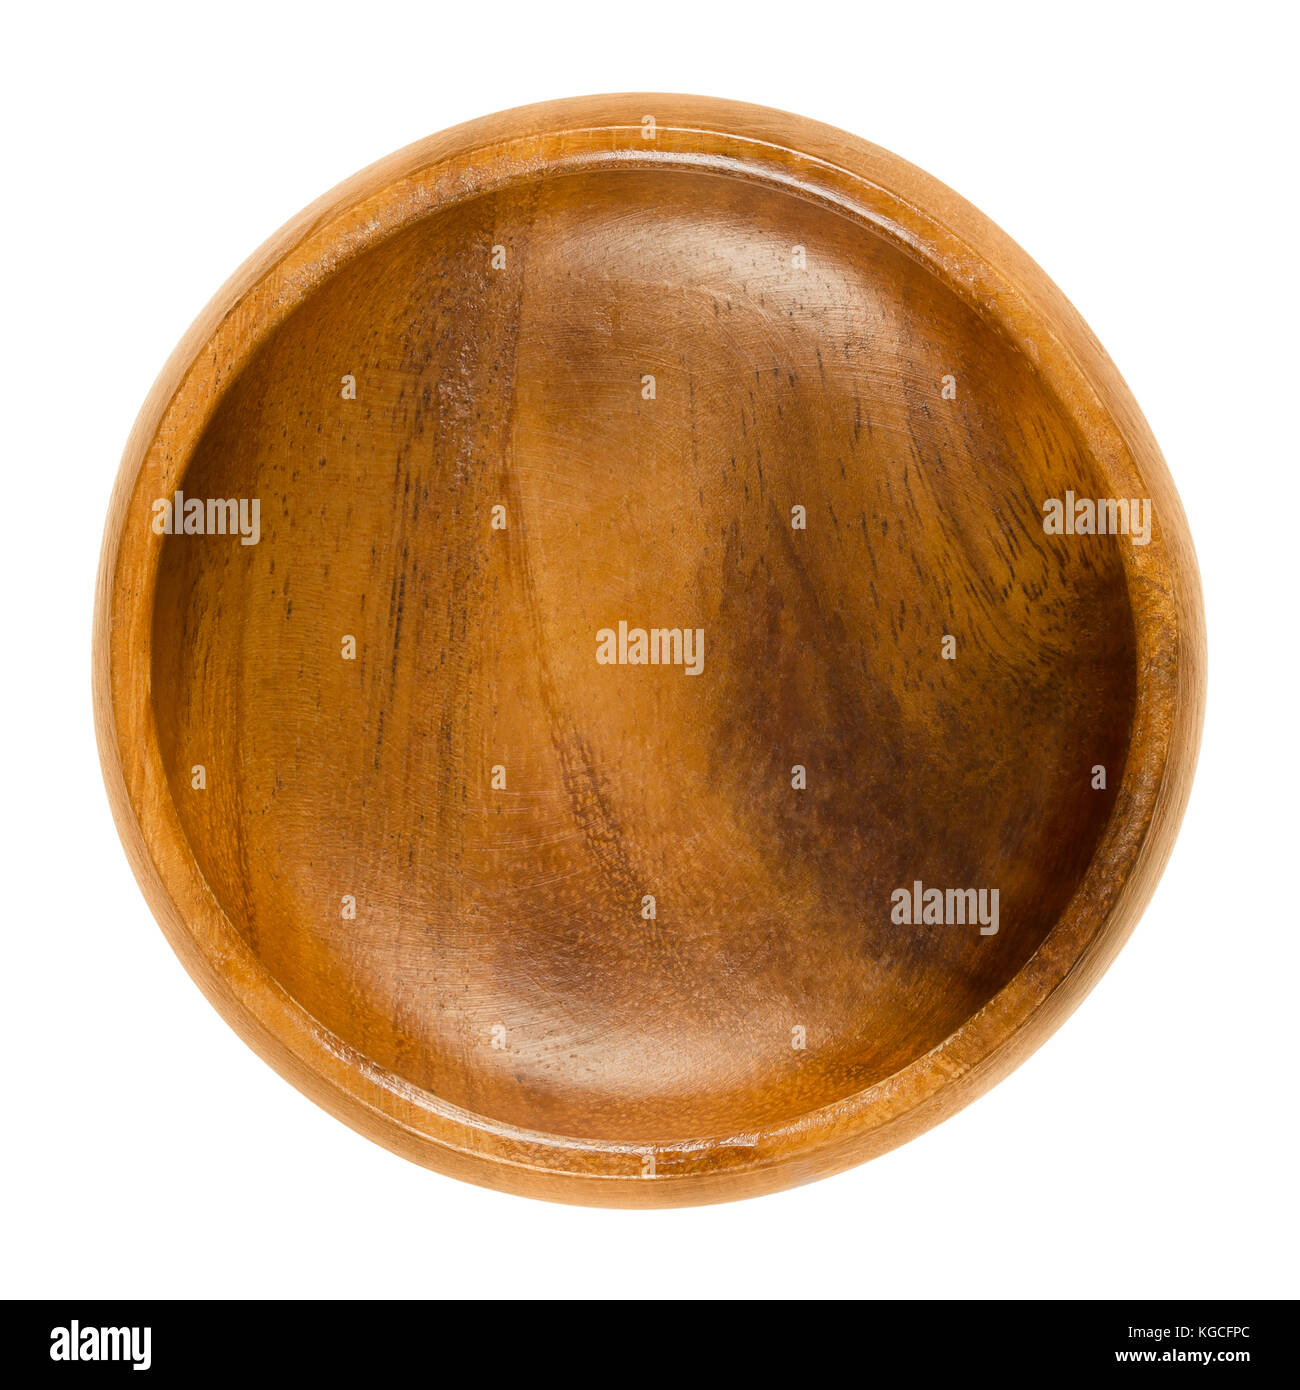 Empty wooden bowl. Small brown bowl with wood grain in simple design. Round open-top container for storing food - Stock Image